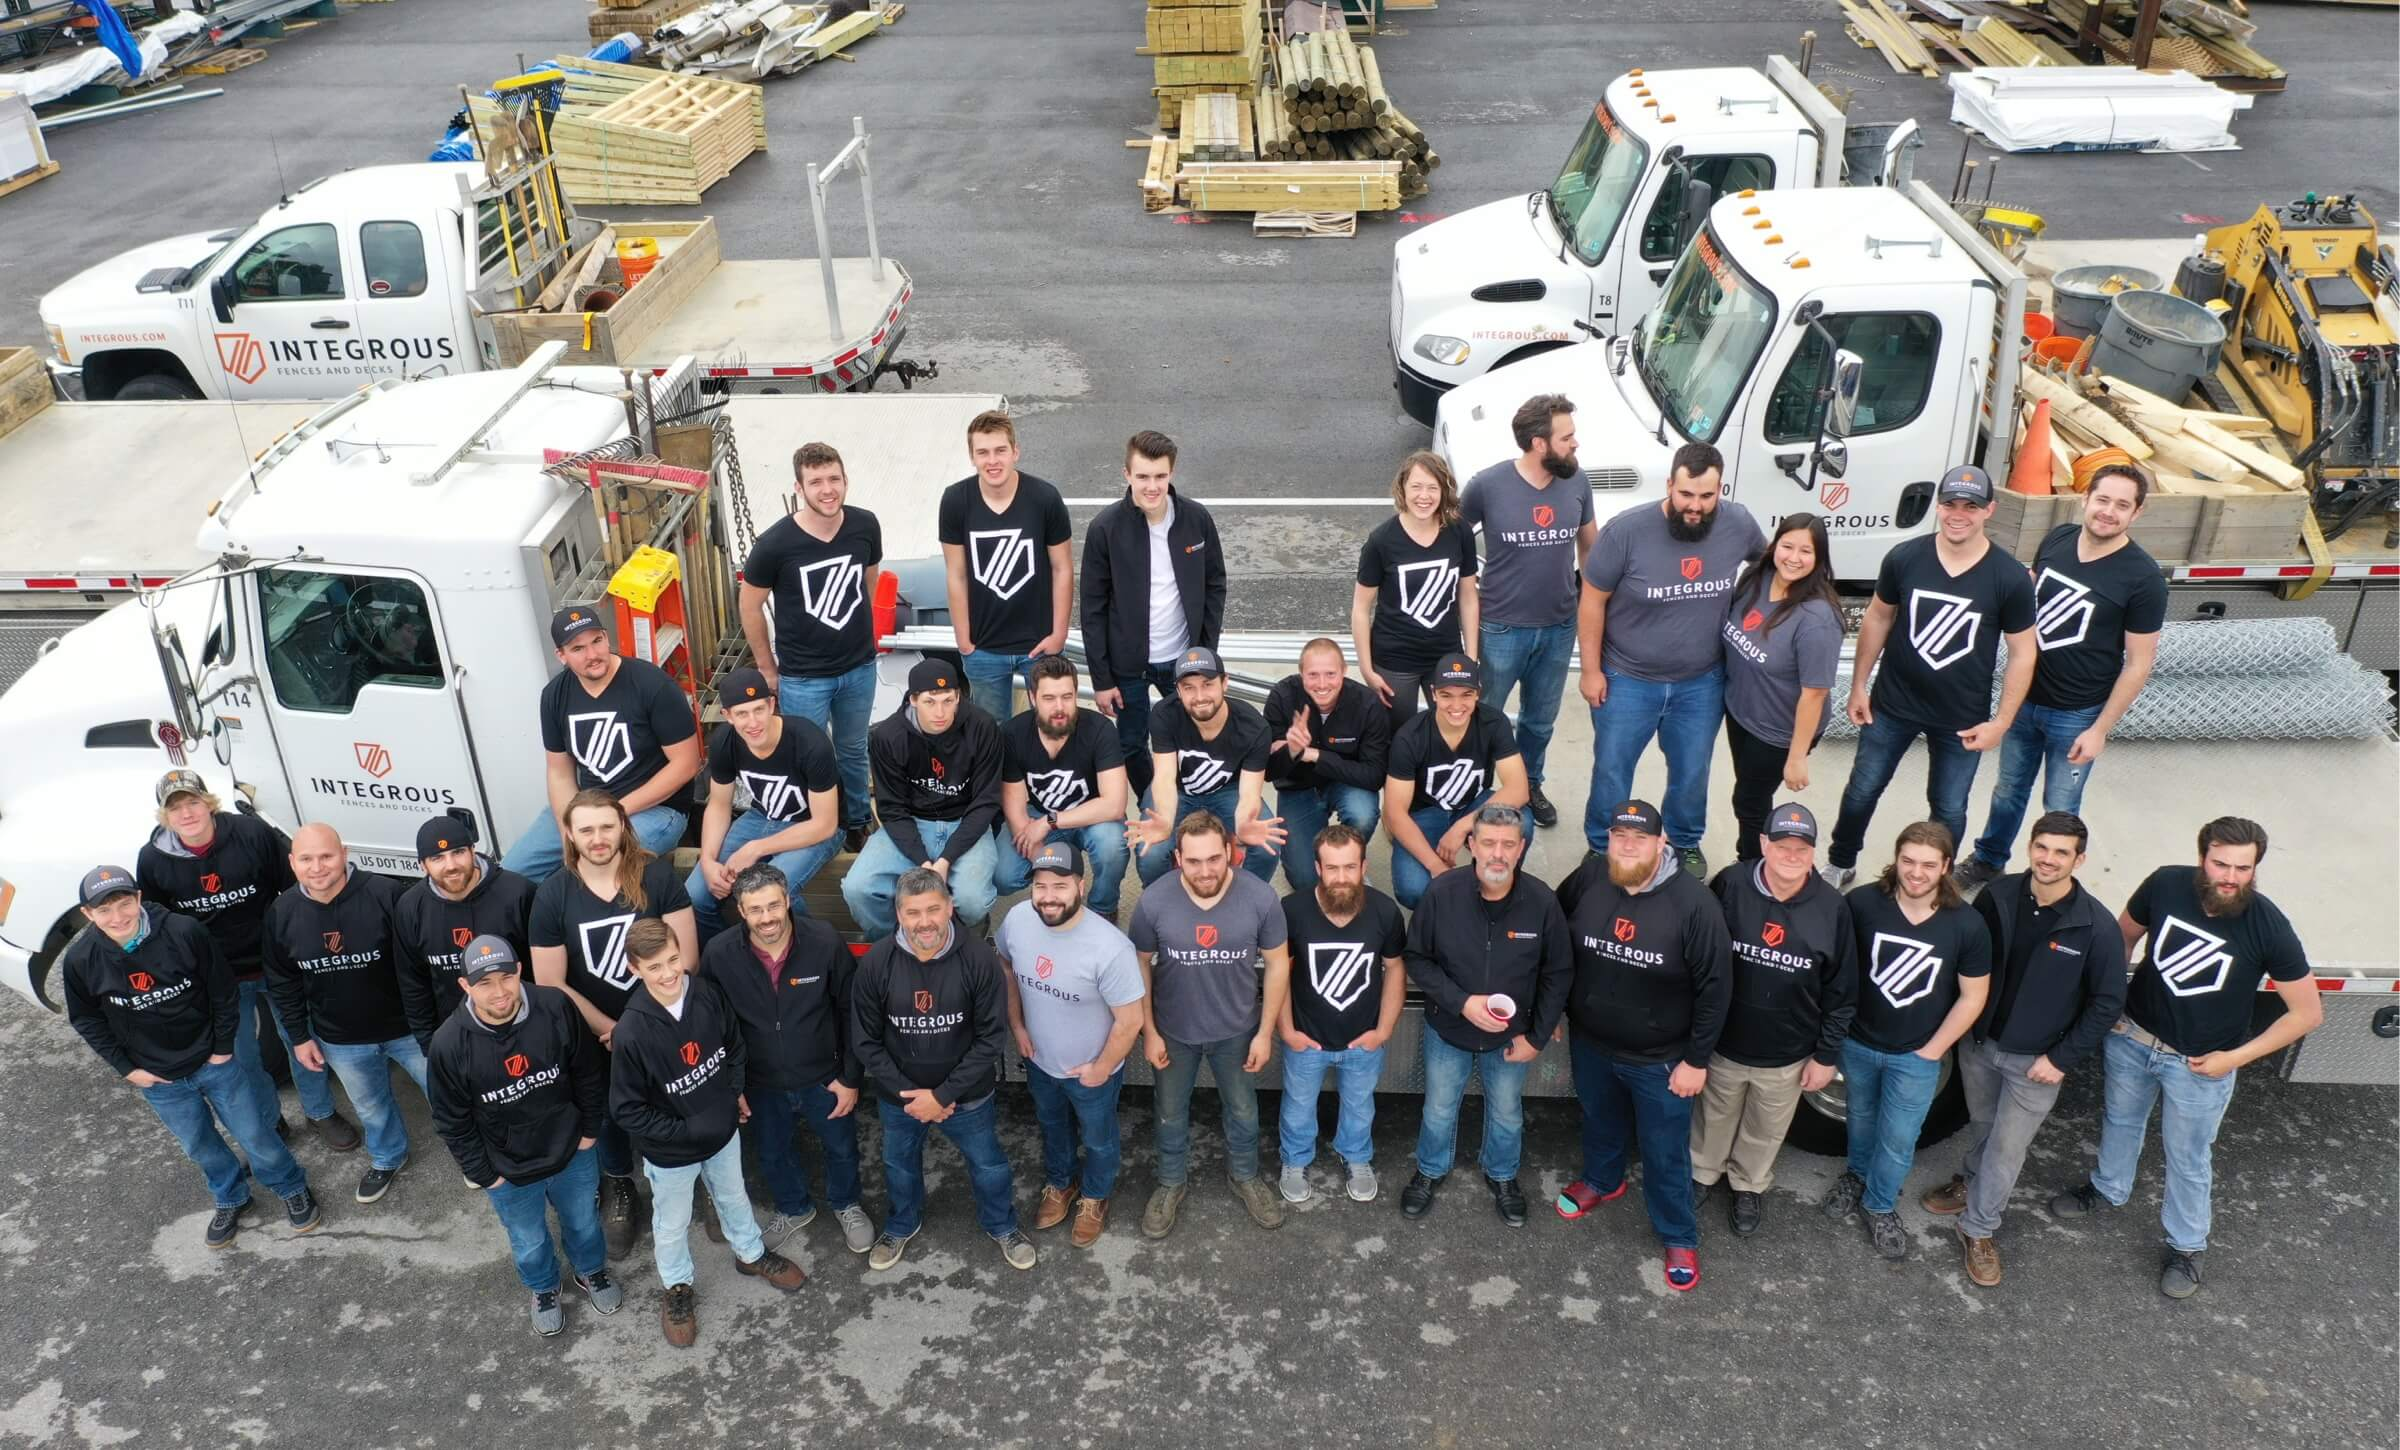 The entire Integrous team posing in front of their large flatbed truck